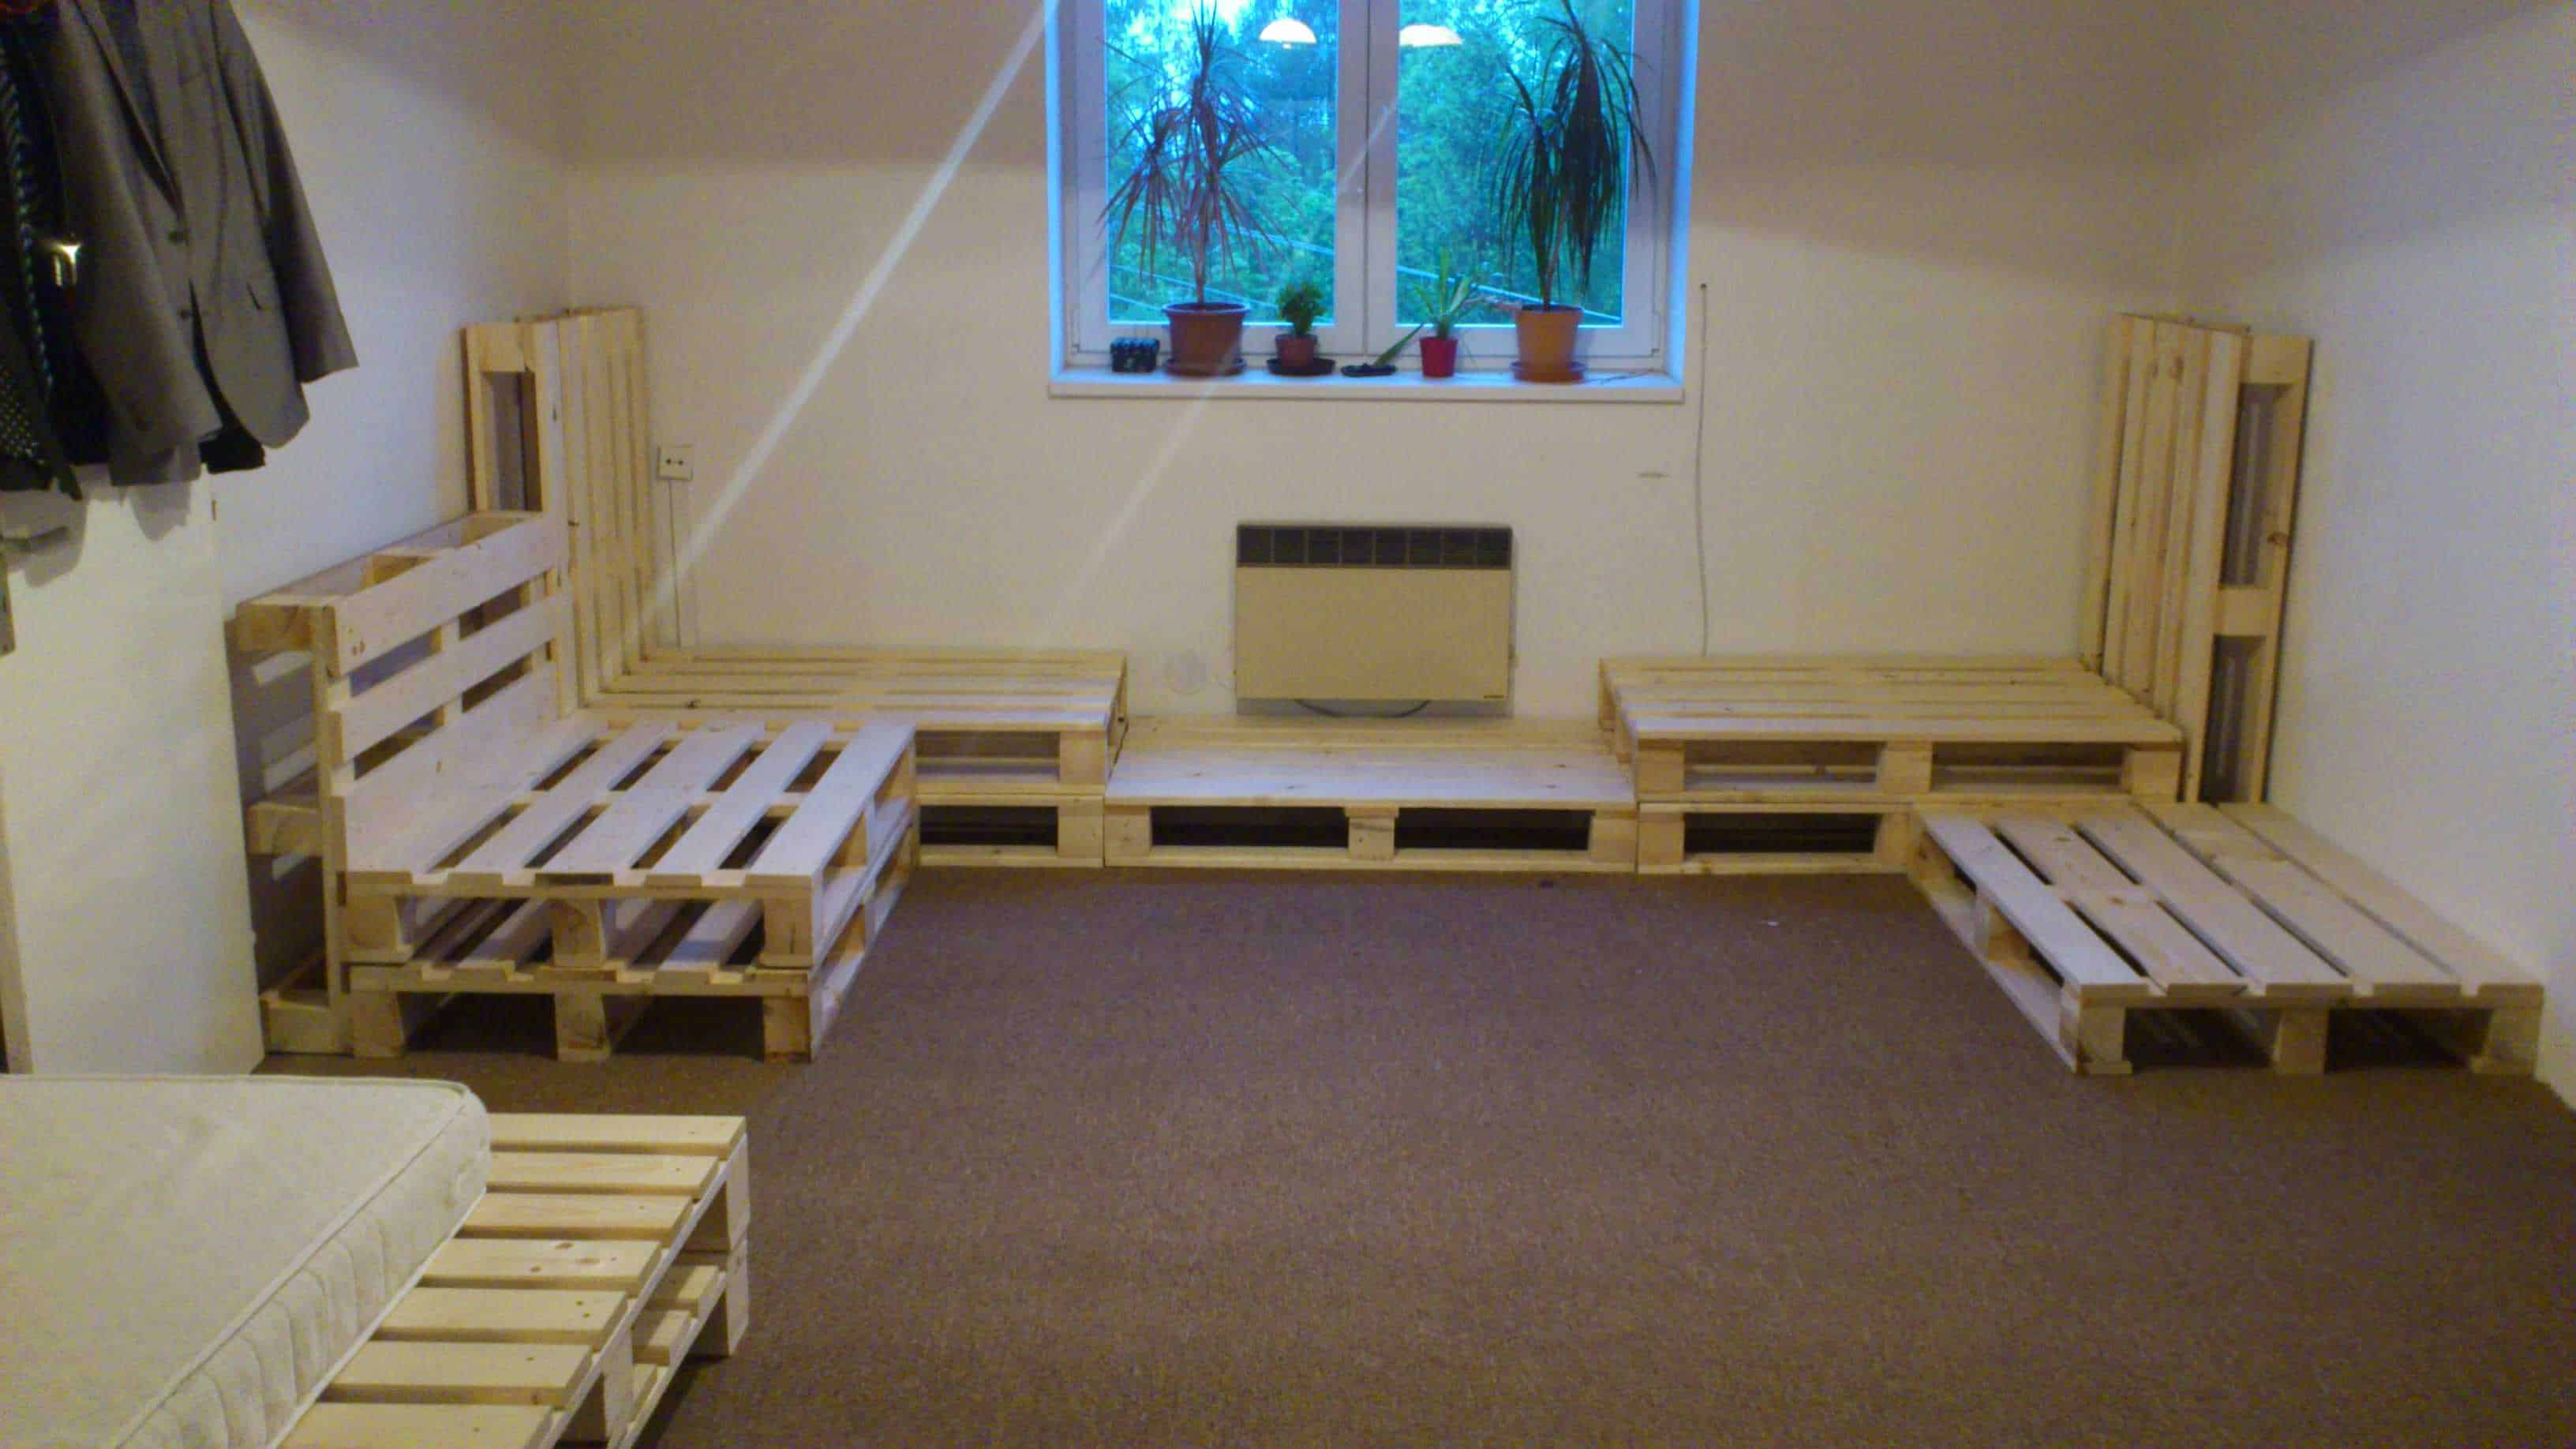 Living Room Installation Made Out Of Repurposed Pallets ... on Pallet Room  id=69922